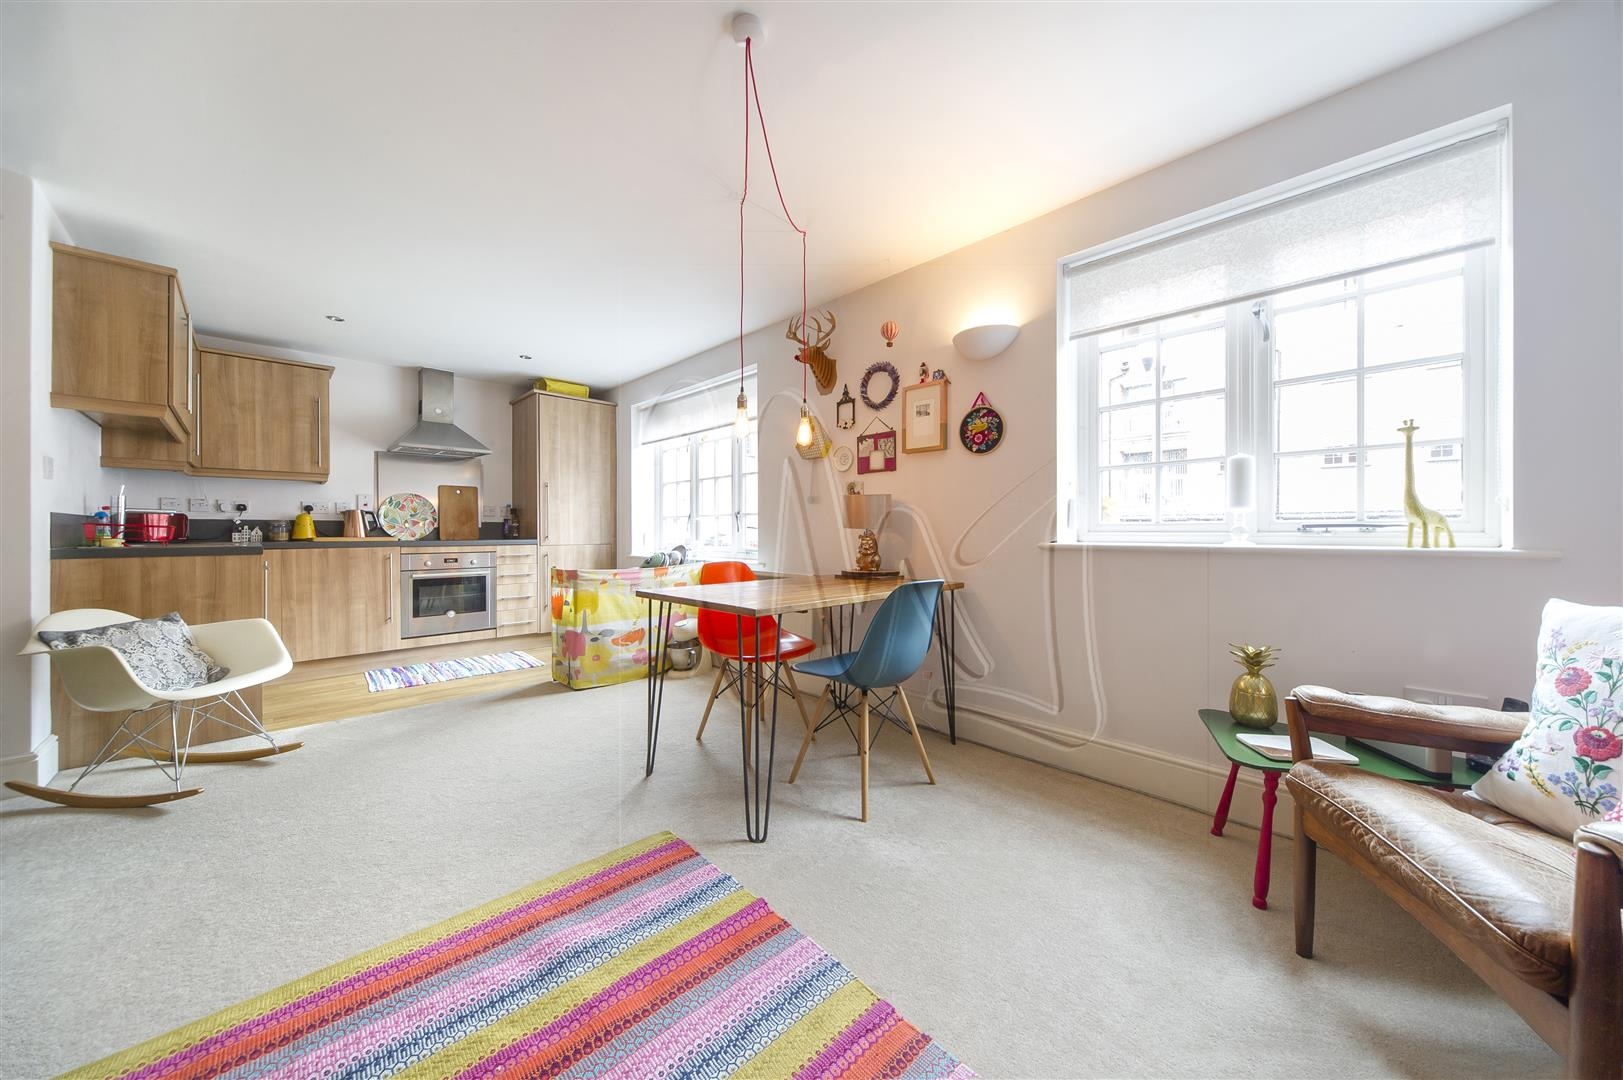 2 Bedrooms Apartment Flat for sale in House of York, 29A Charlotte Street, Birmingham